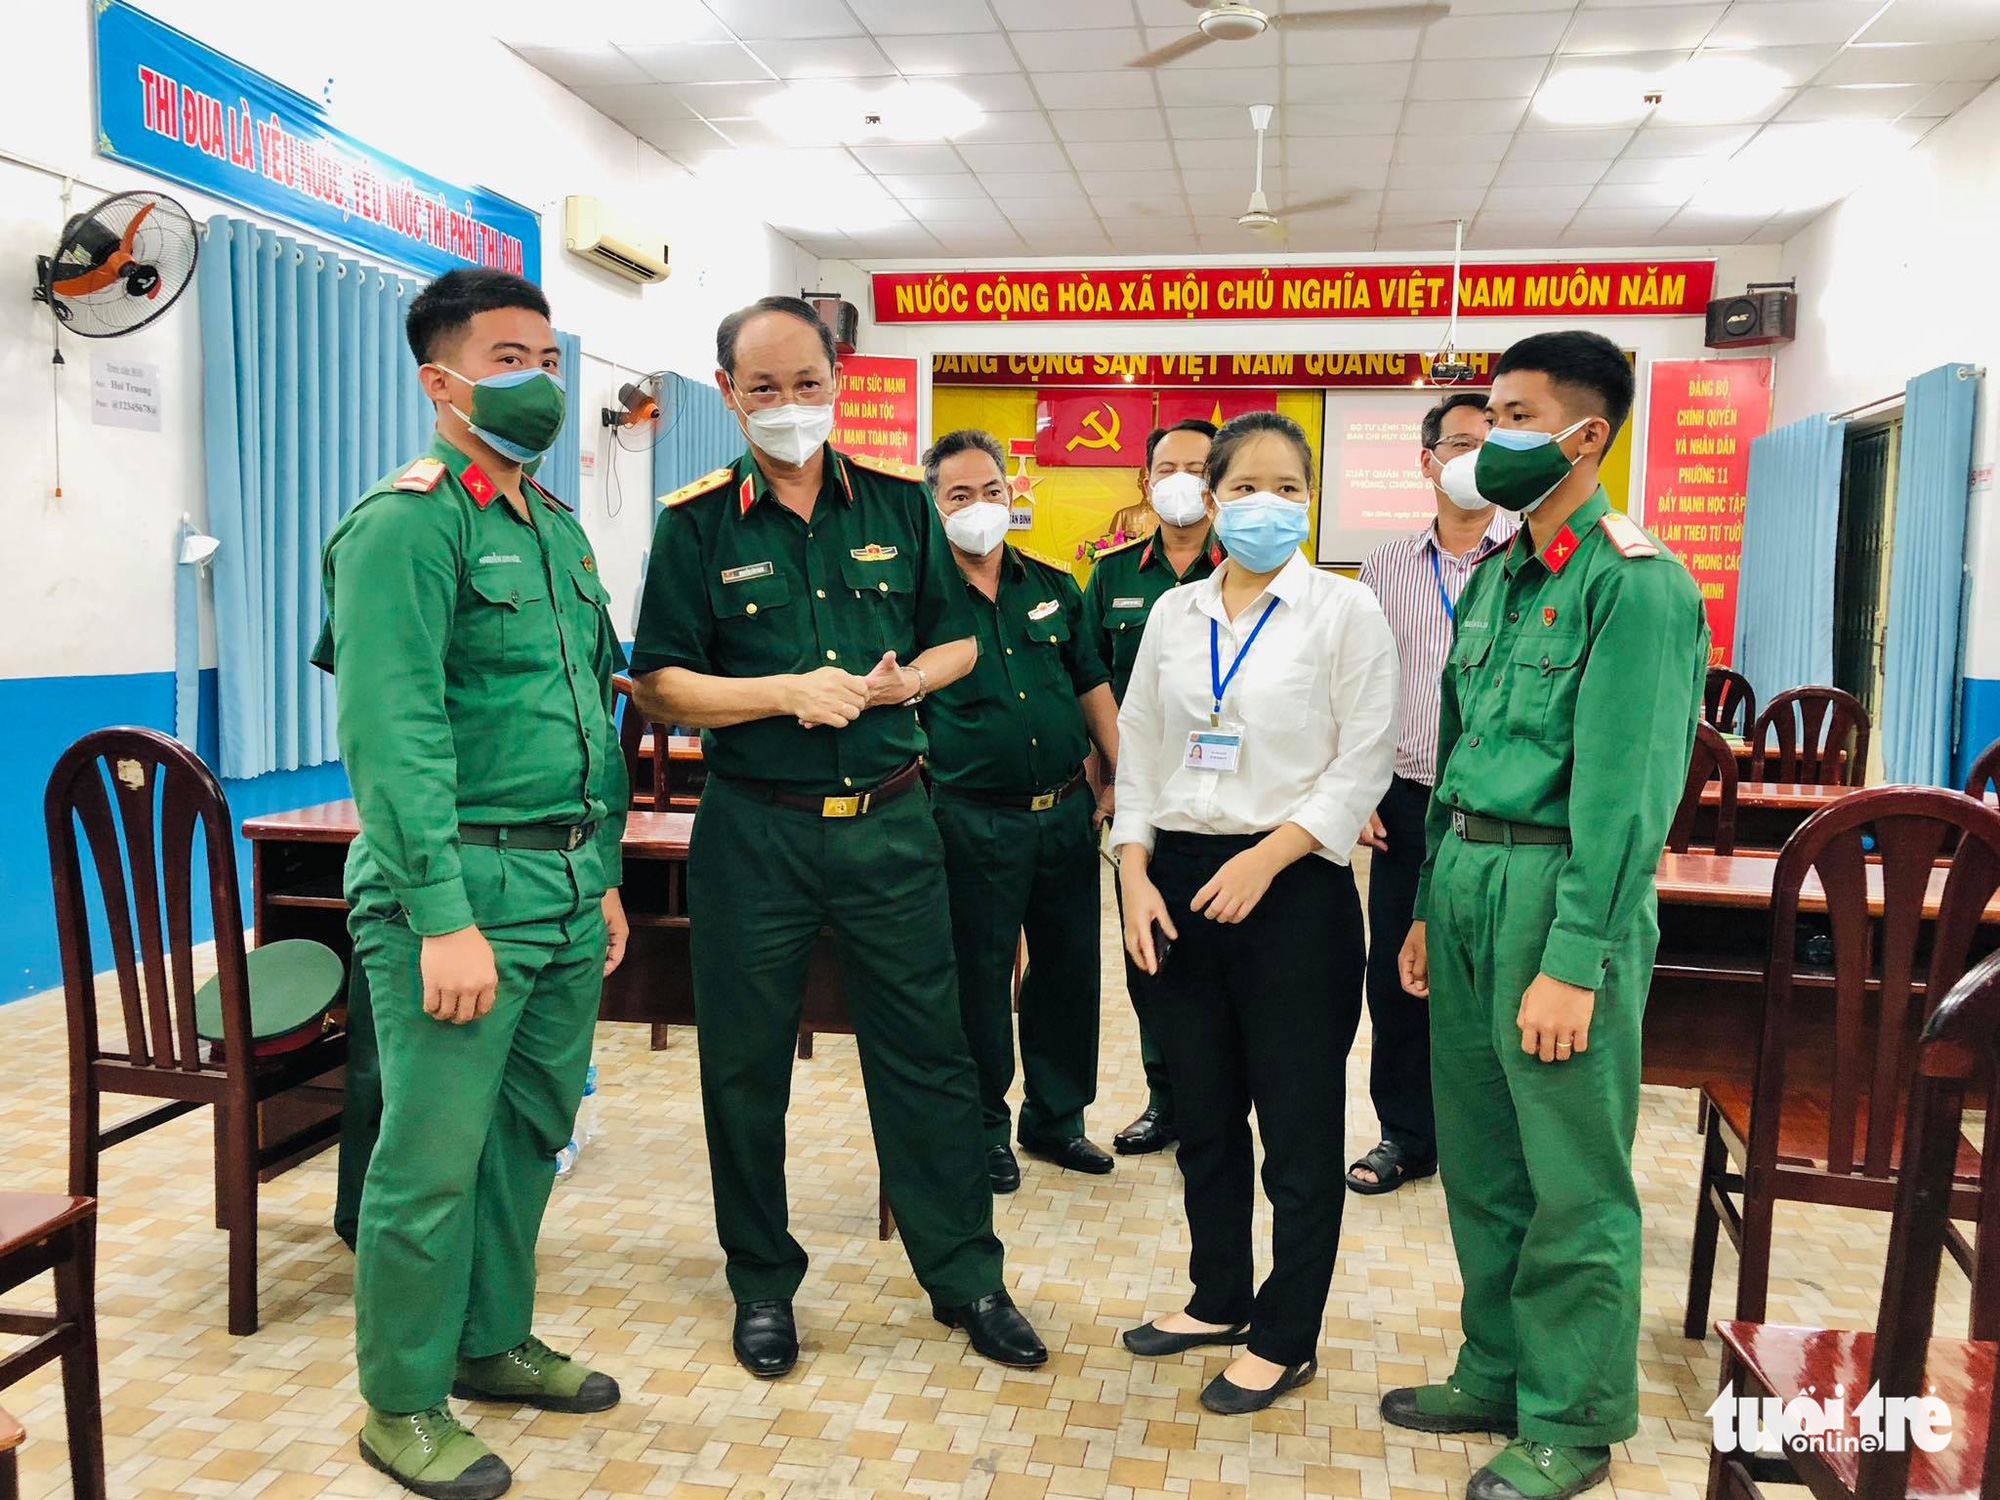 Lieutenant General Nguyen Van Nam (L, 2nd), commander of the Ho Chi Minh City High Command, talks with officers at the police headquarters in Ward 11, Tan Binh District, Ho Chi Minh City, August 22, 2021. Photo: Chau Tuan / Tuoi Tre